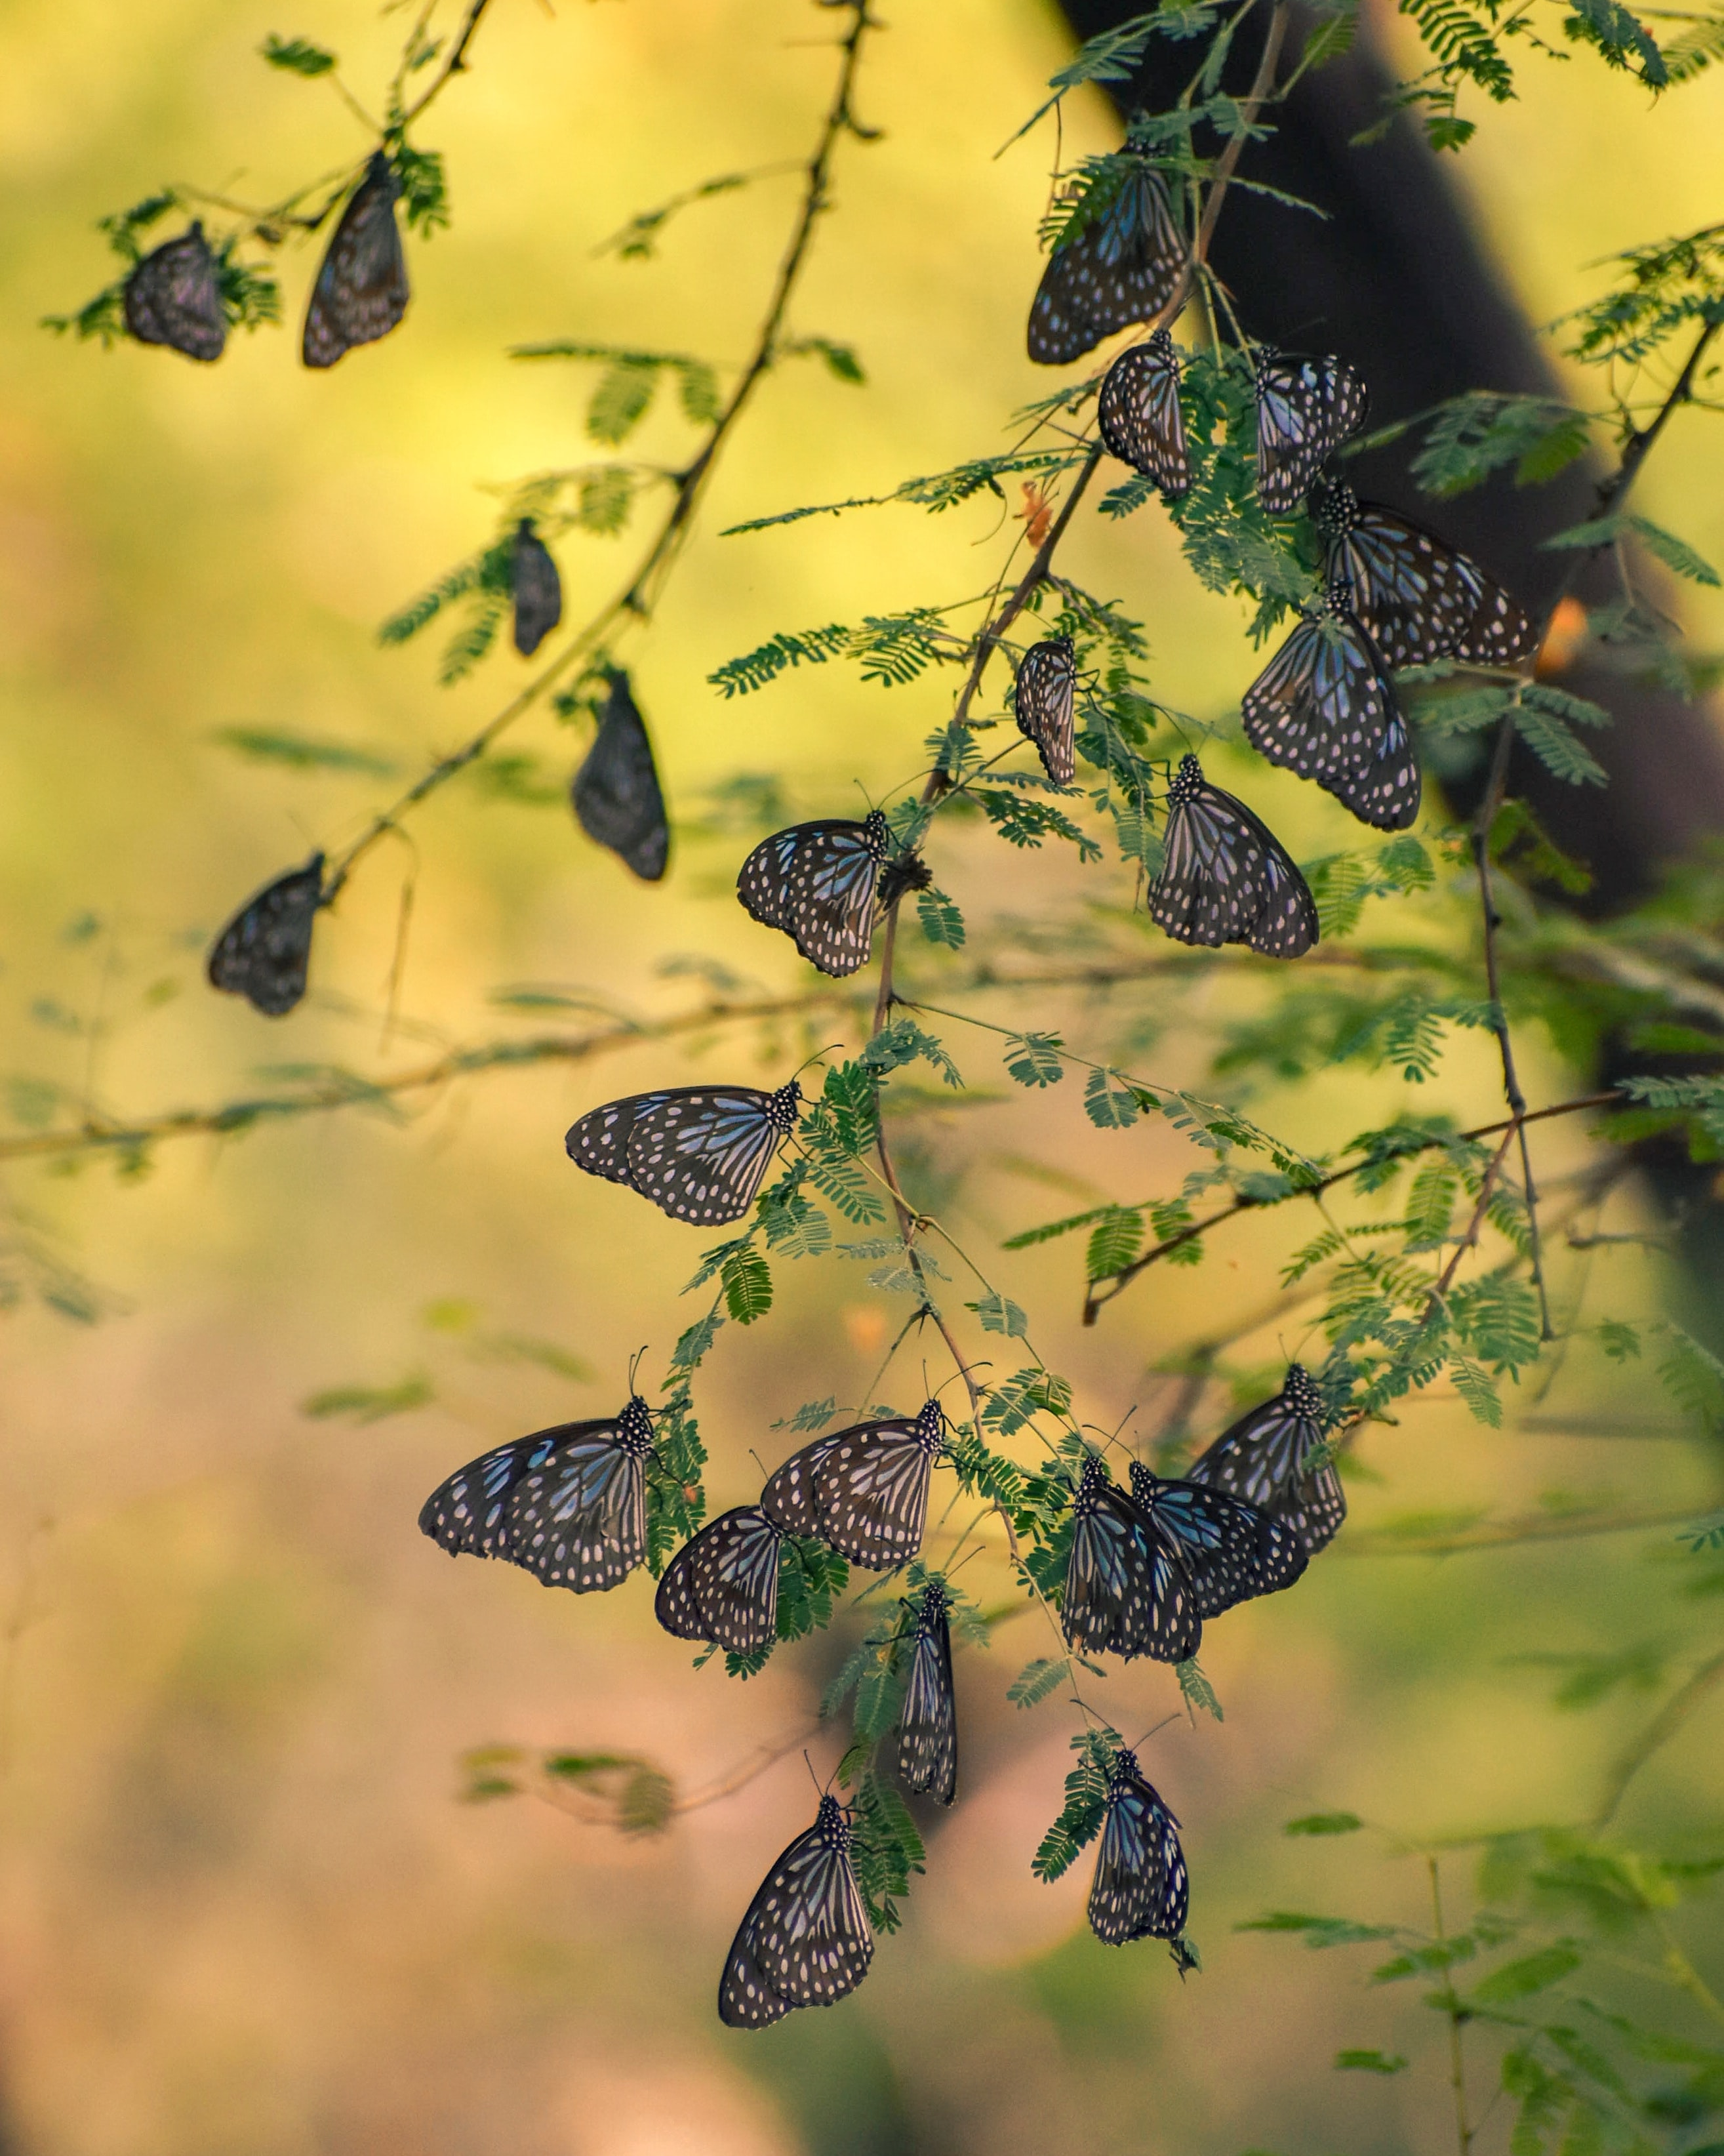 124632 download wallpaper Macro, Butterflies, Branches, Leaves, Insects screensavers and pictures for free